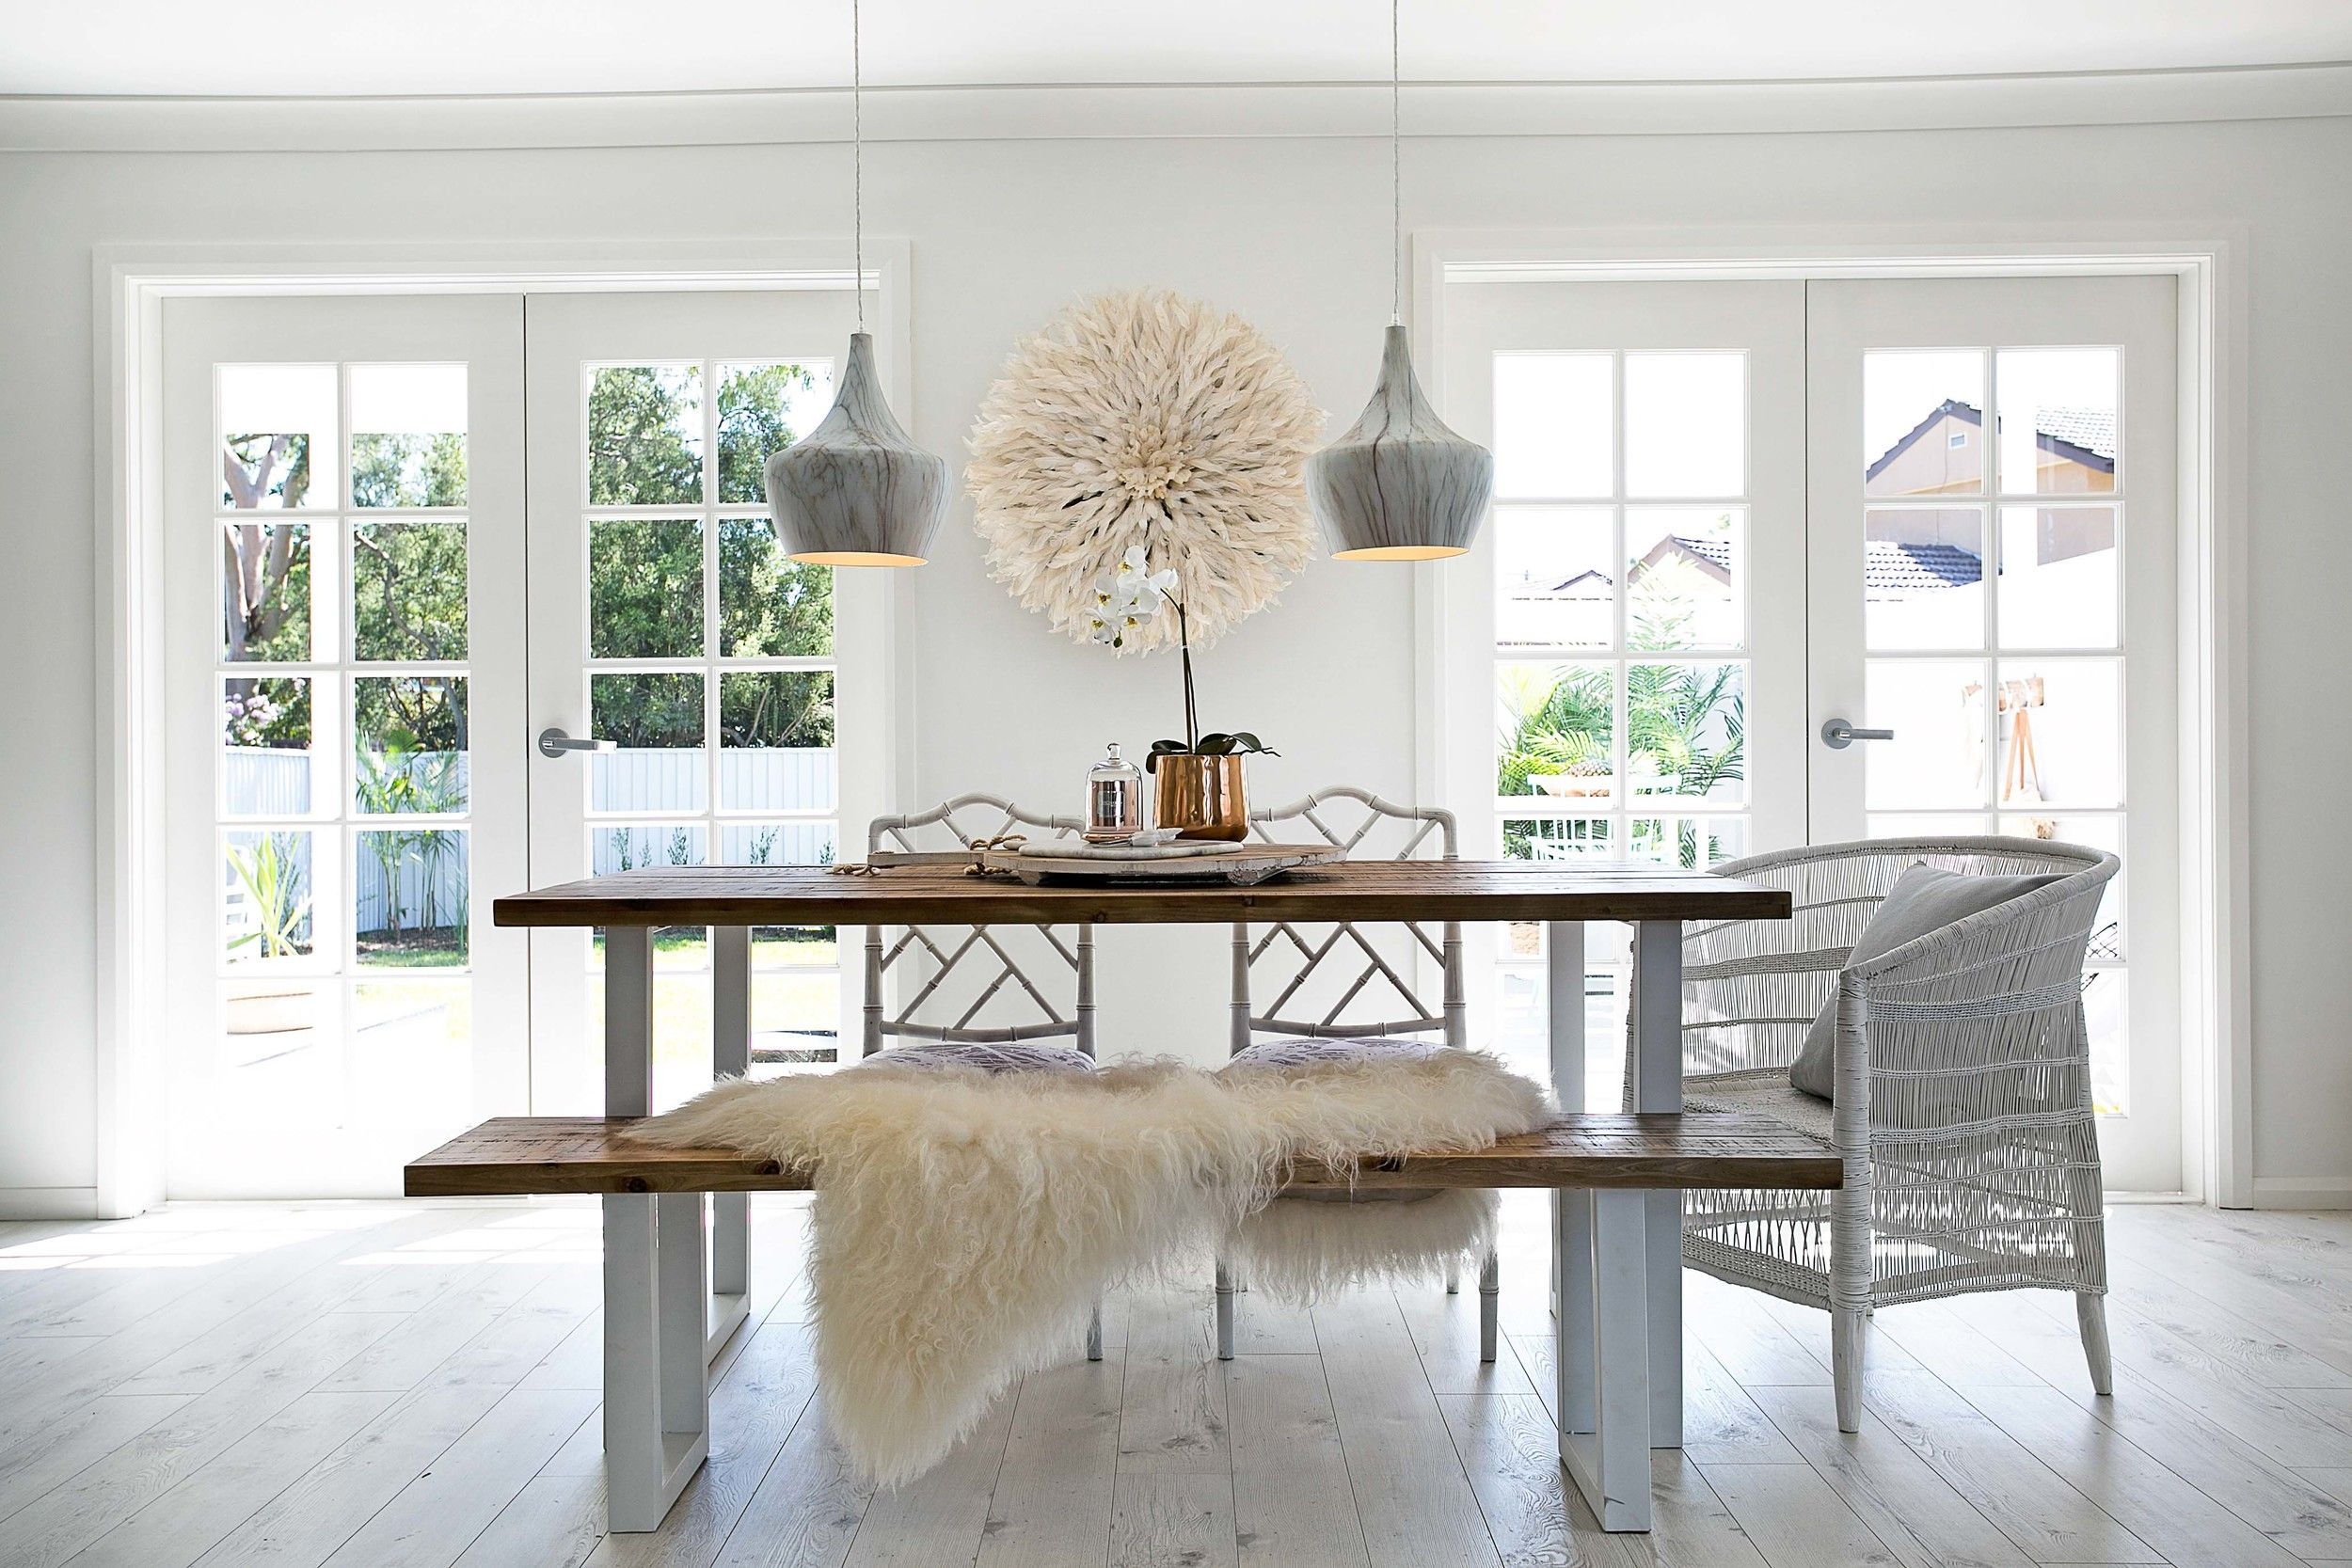 refined beach style in sydney australia lets eat dining rooms rh pinterest com